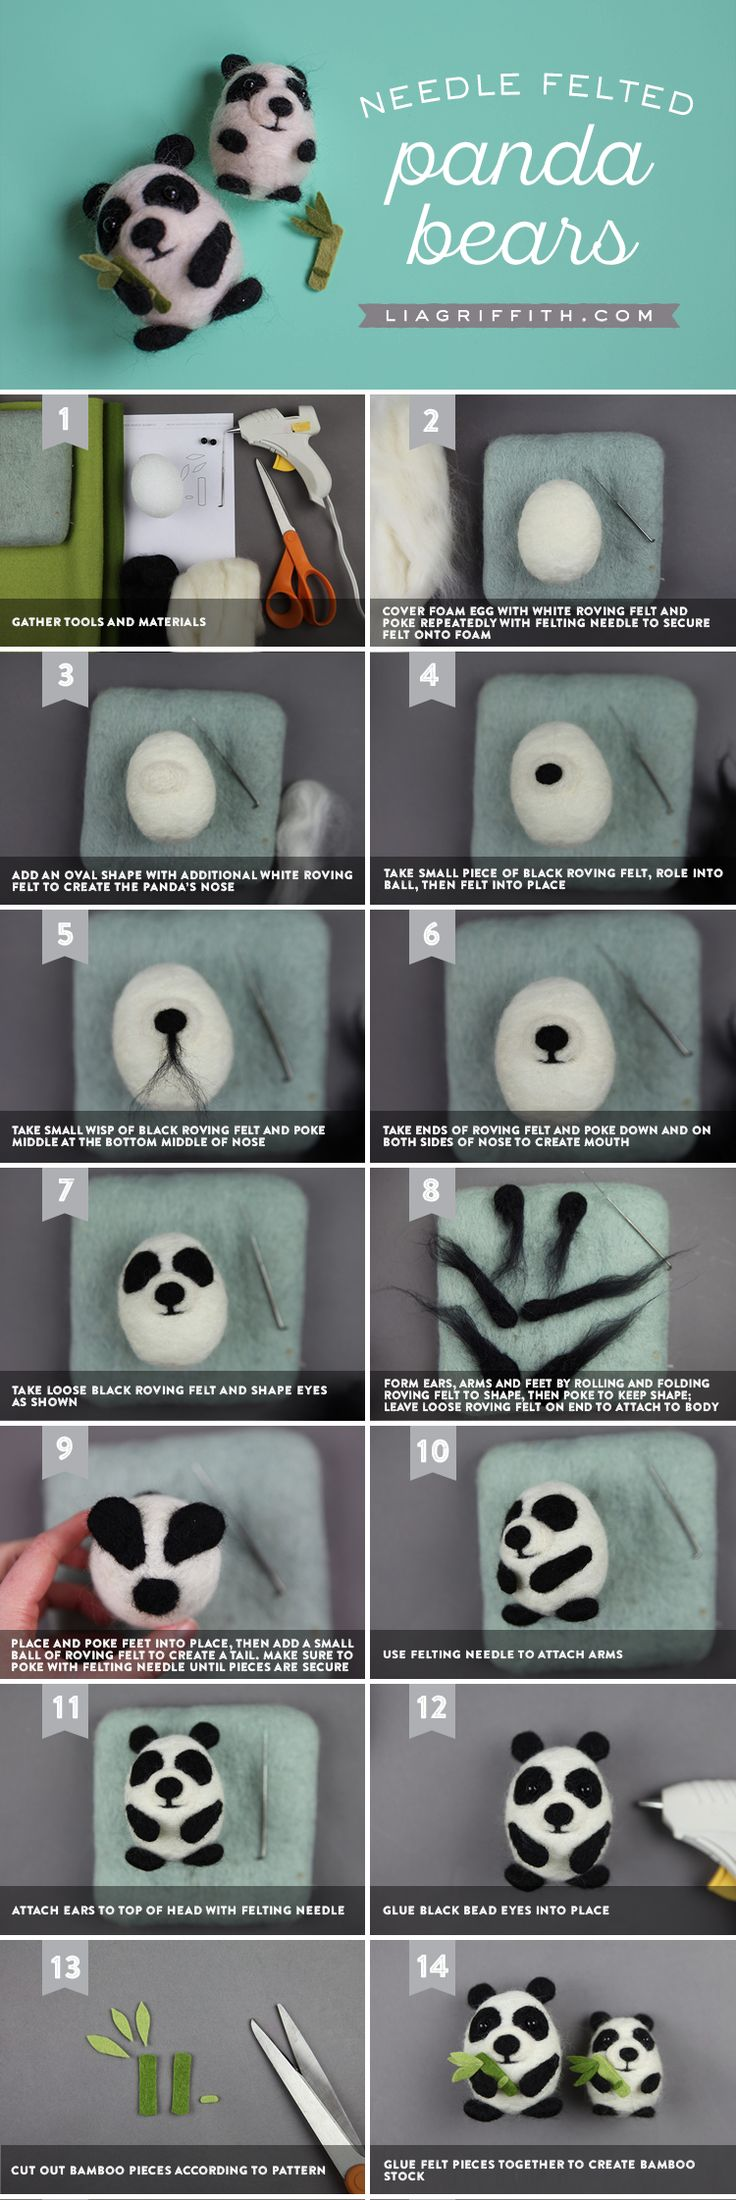 Panda Pals  What's black, white, and cute all over? These adorable needle felted panda pals. Crafting your own is super simple. We'll guide you through it here https://liagriffith.com/needle-felted-panda-pals/ * * * #panda #pandas #needlecraft #needle #felt #feltcute #needlefelting #needlefelt #diy #diycraft #diycrafts #diyproject #diyprojects #diyidea #diyideas #madewithlia